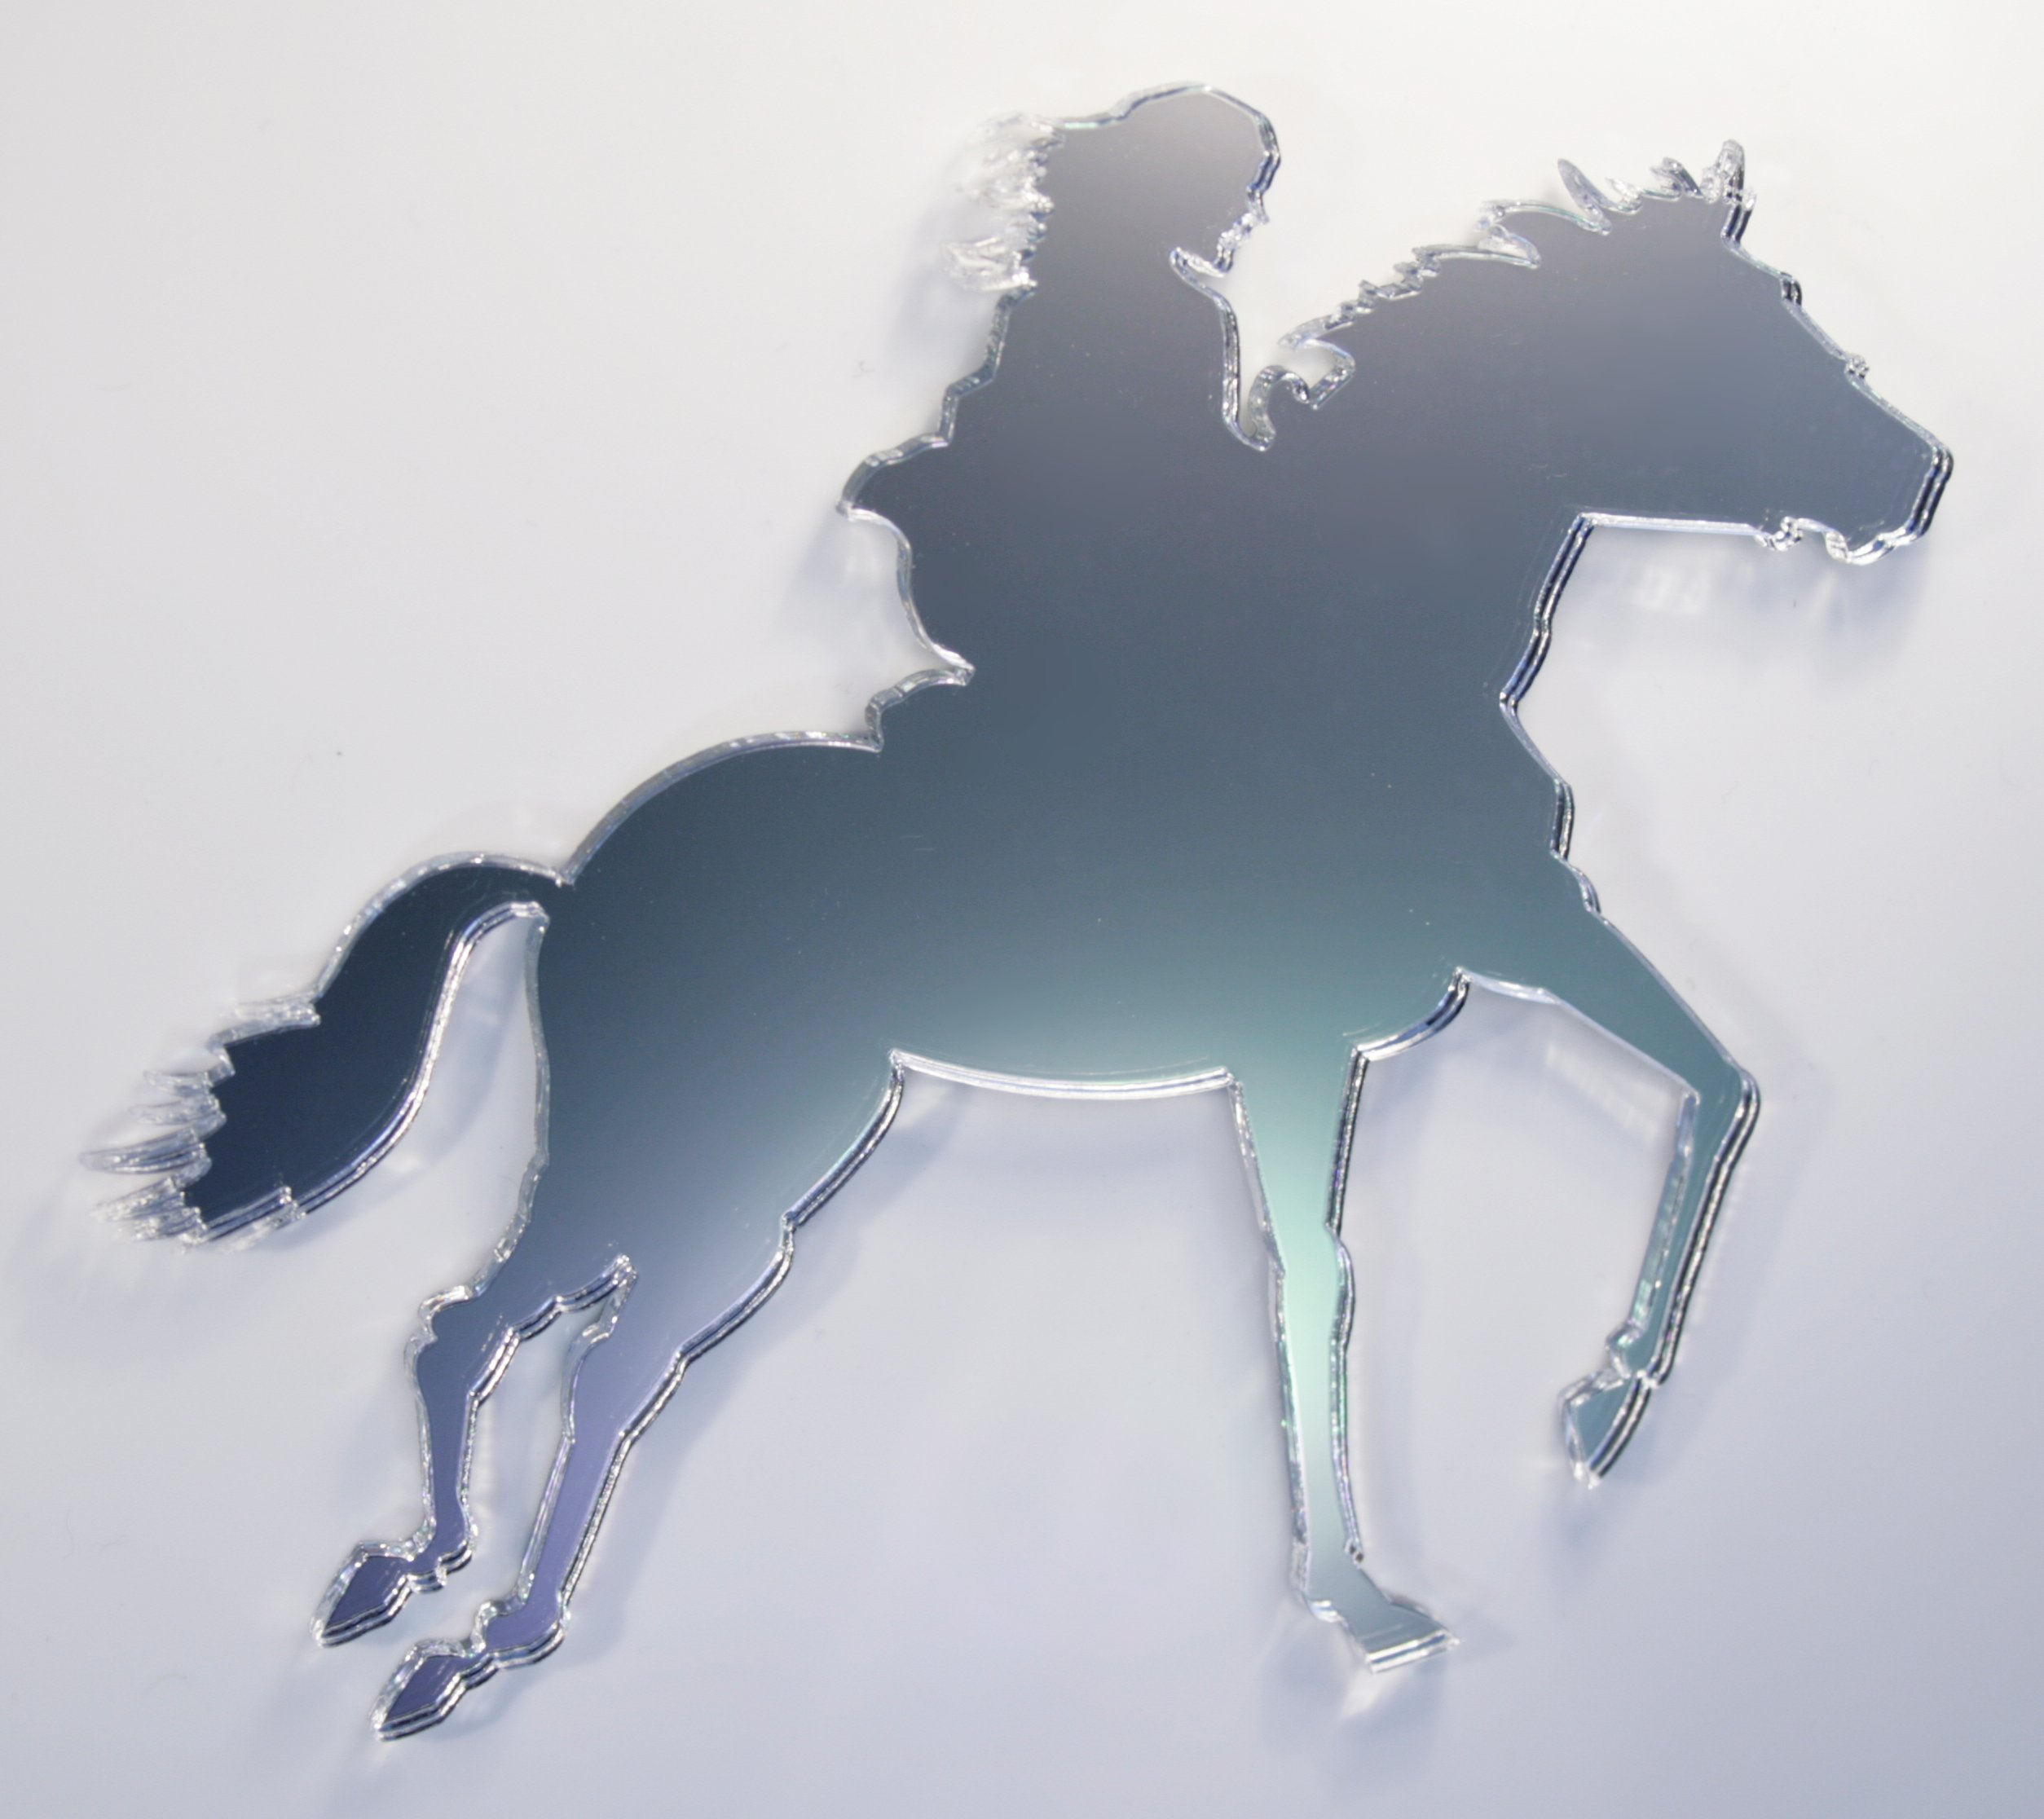 Horse Mirror - Available in various sizes, including sets for crafting kits - 50cm x 40cm